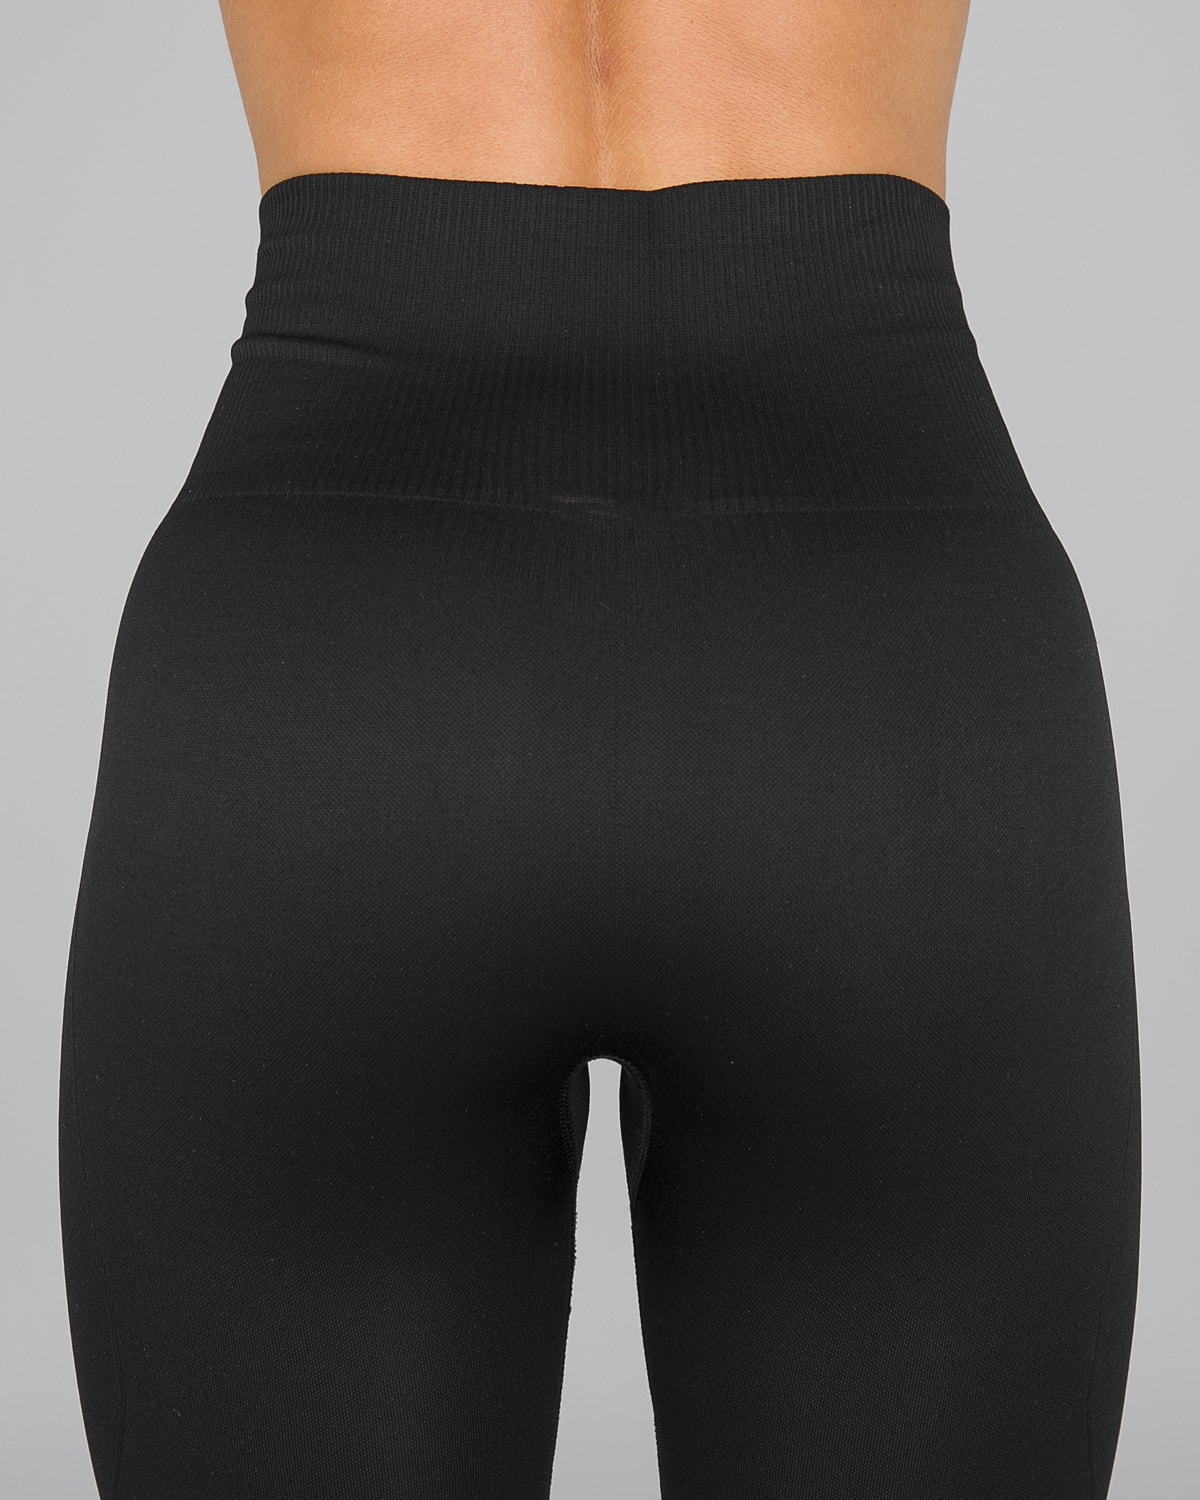 Workout Empire – Sculpt Leggings – Svart11